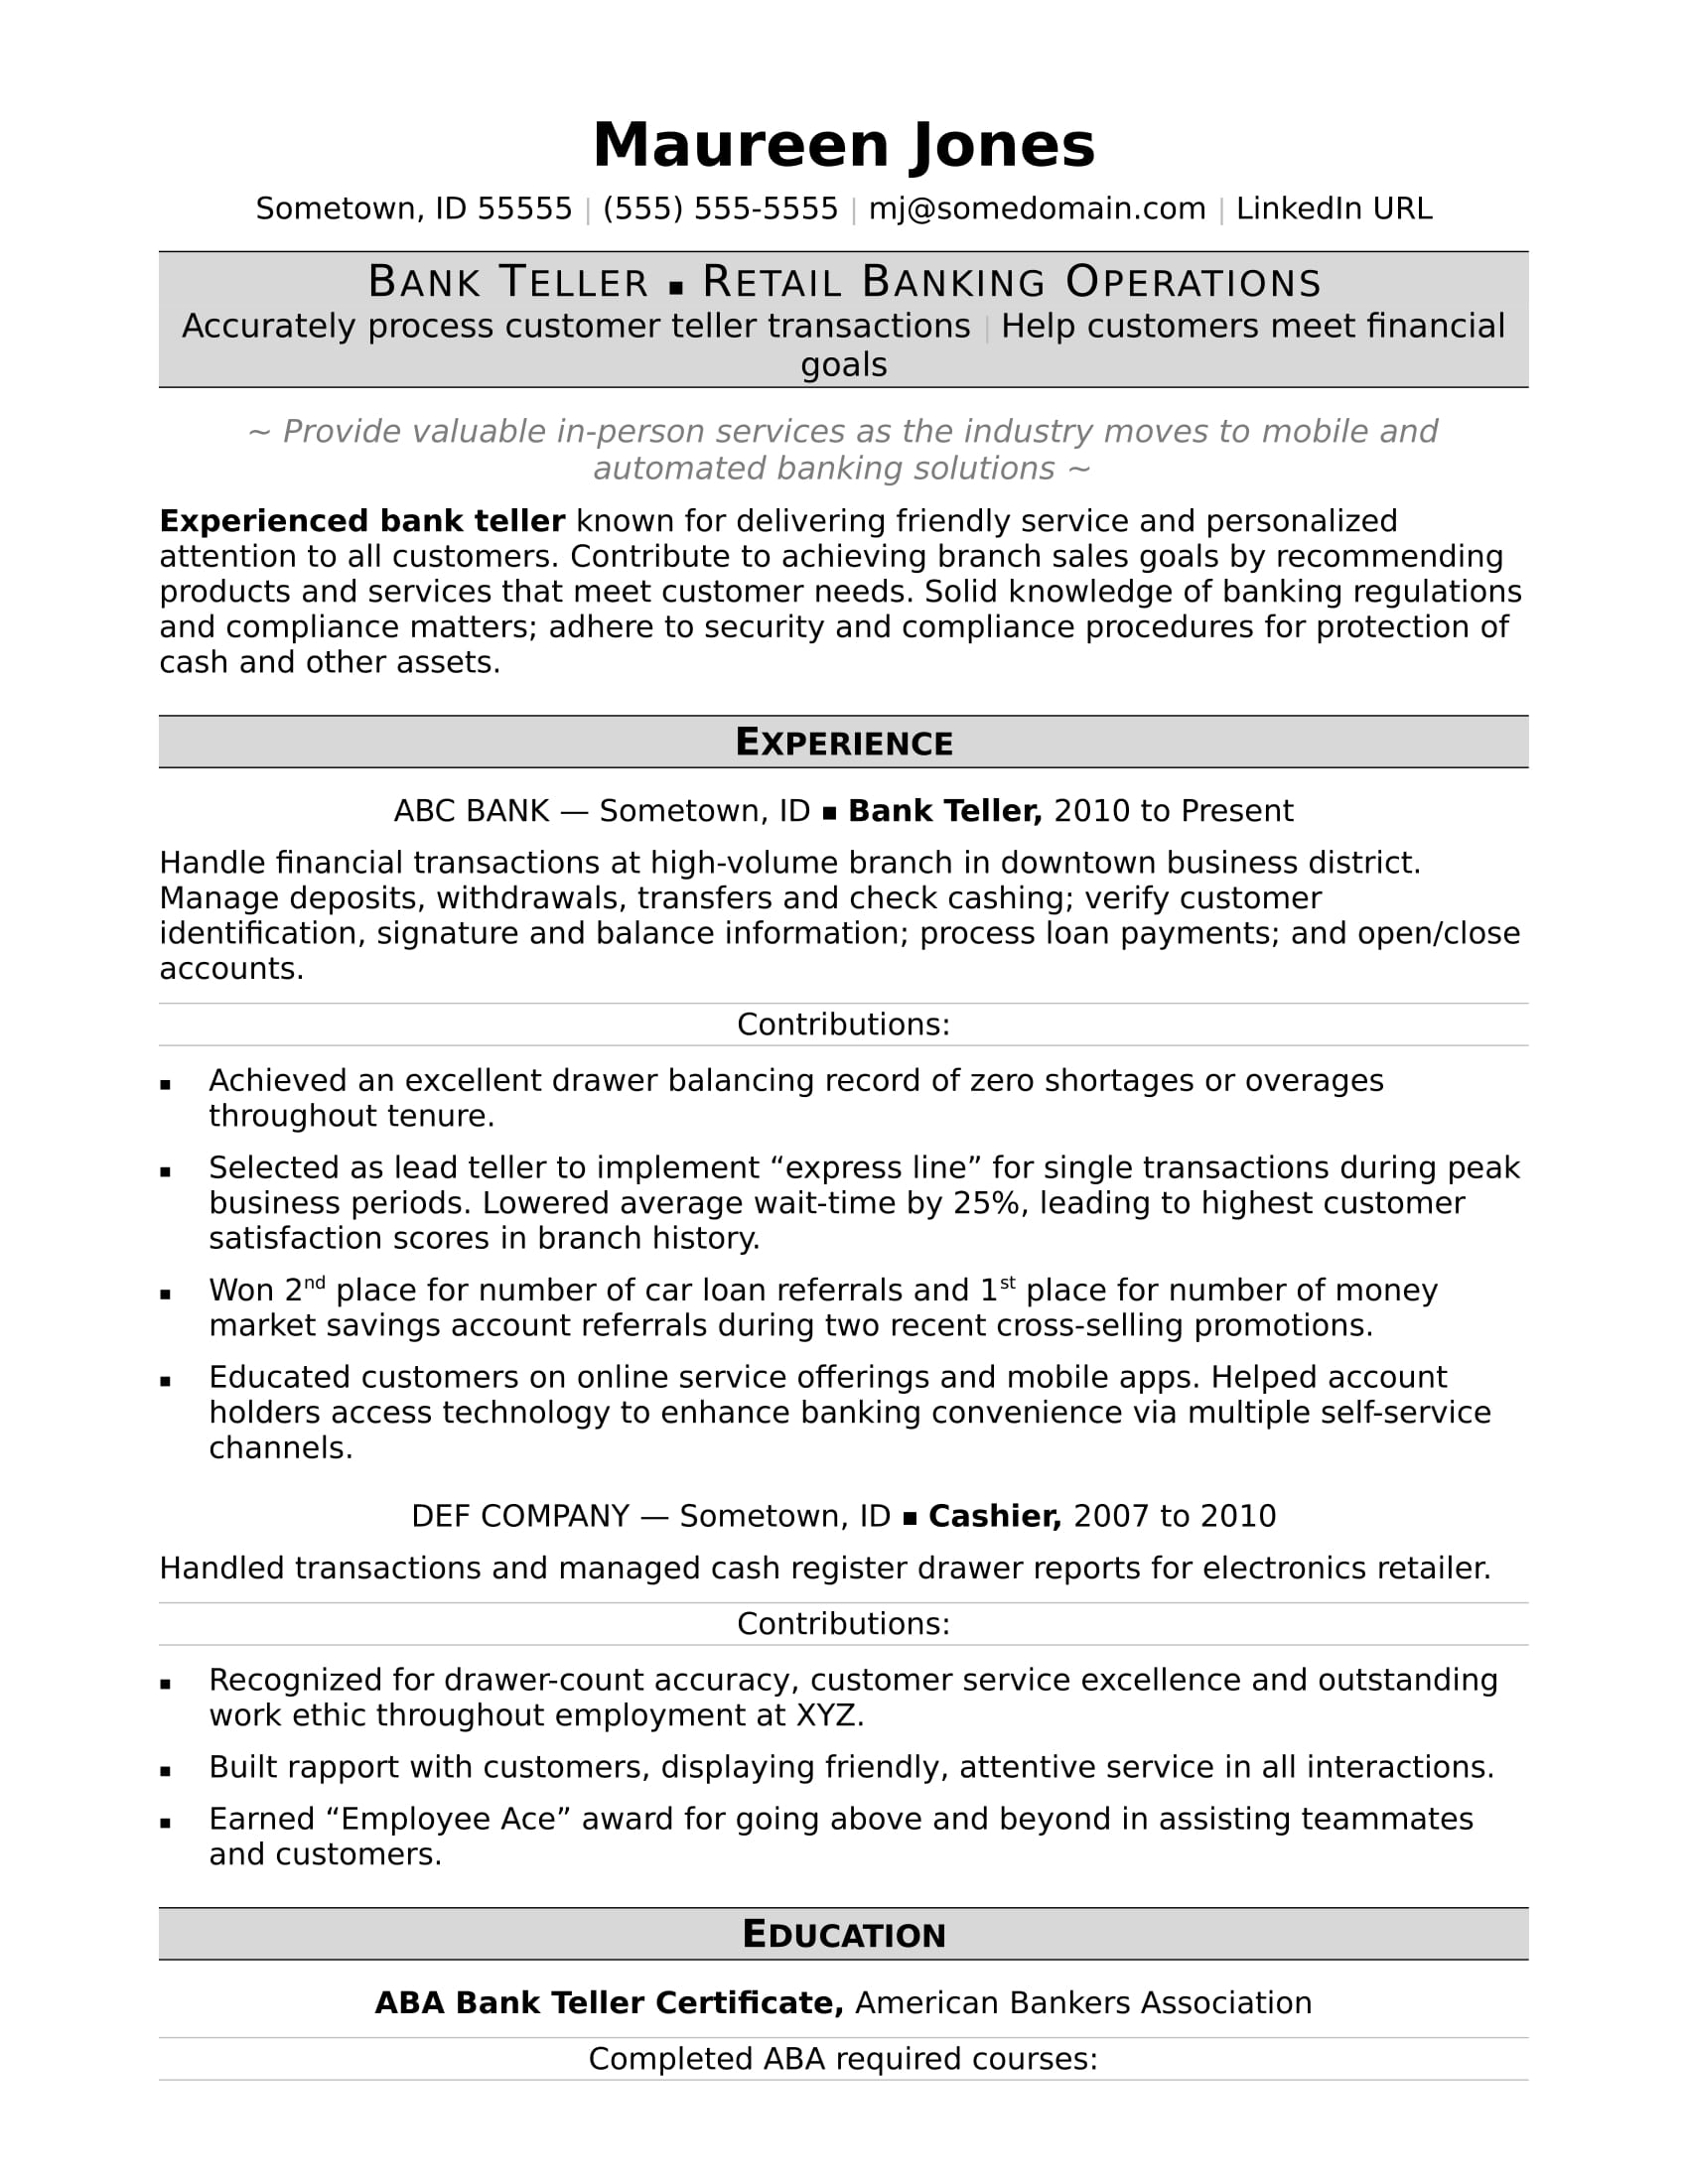 Bank Teller Resume Sample | Monster